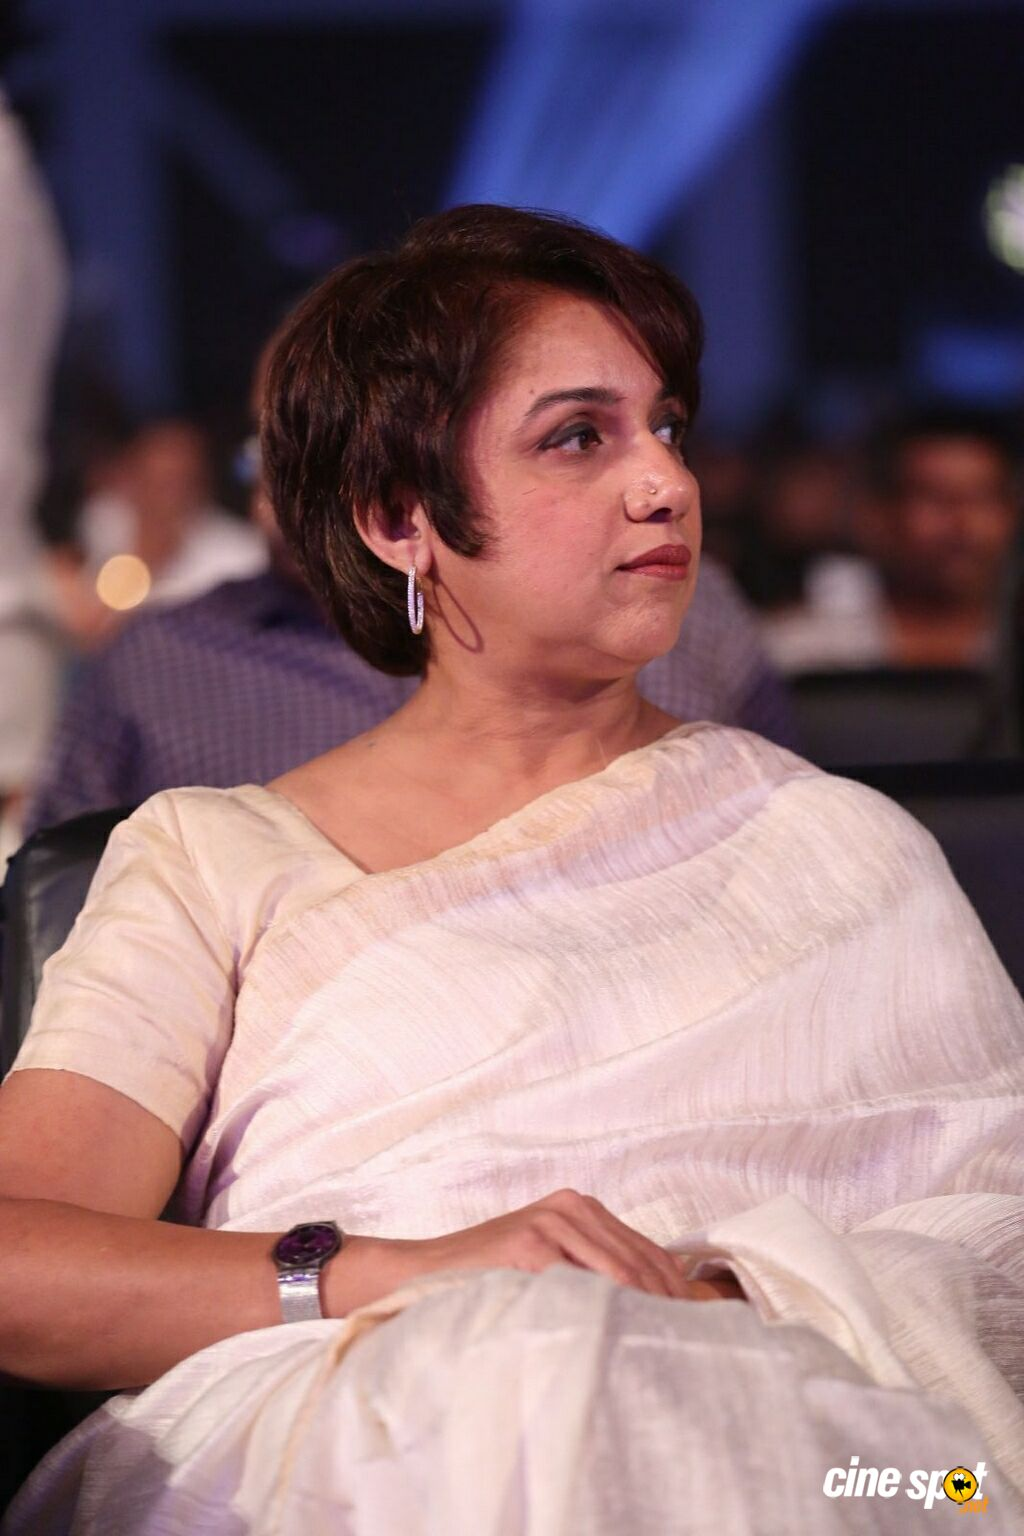 revathi biography